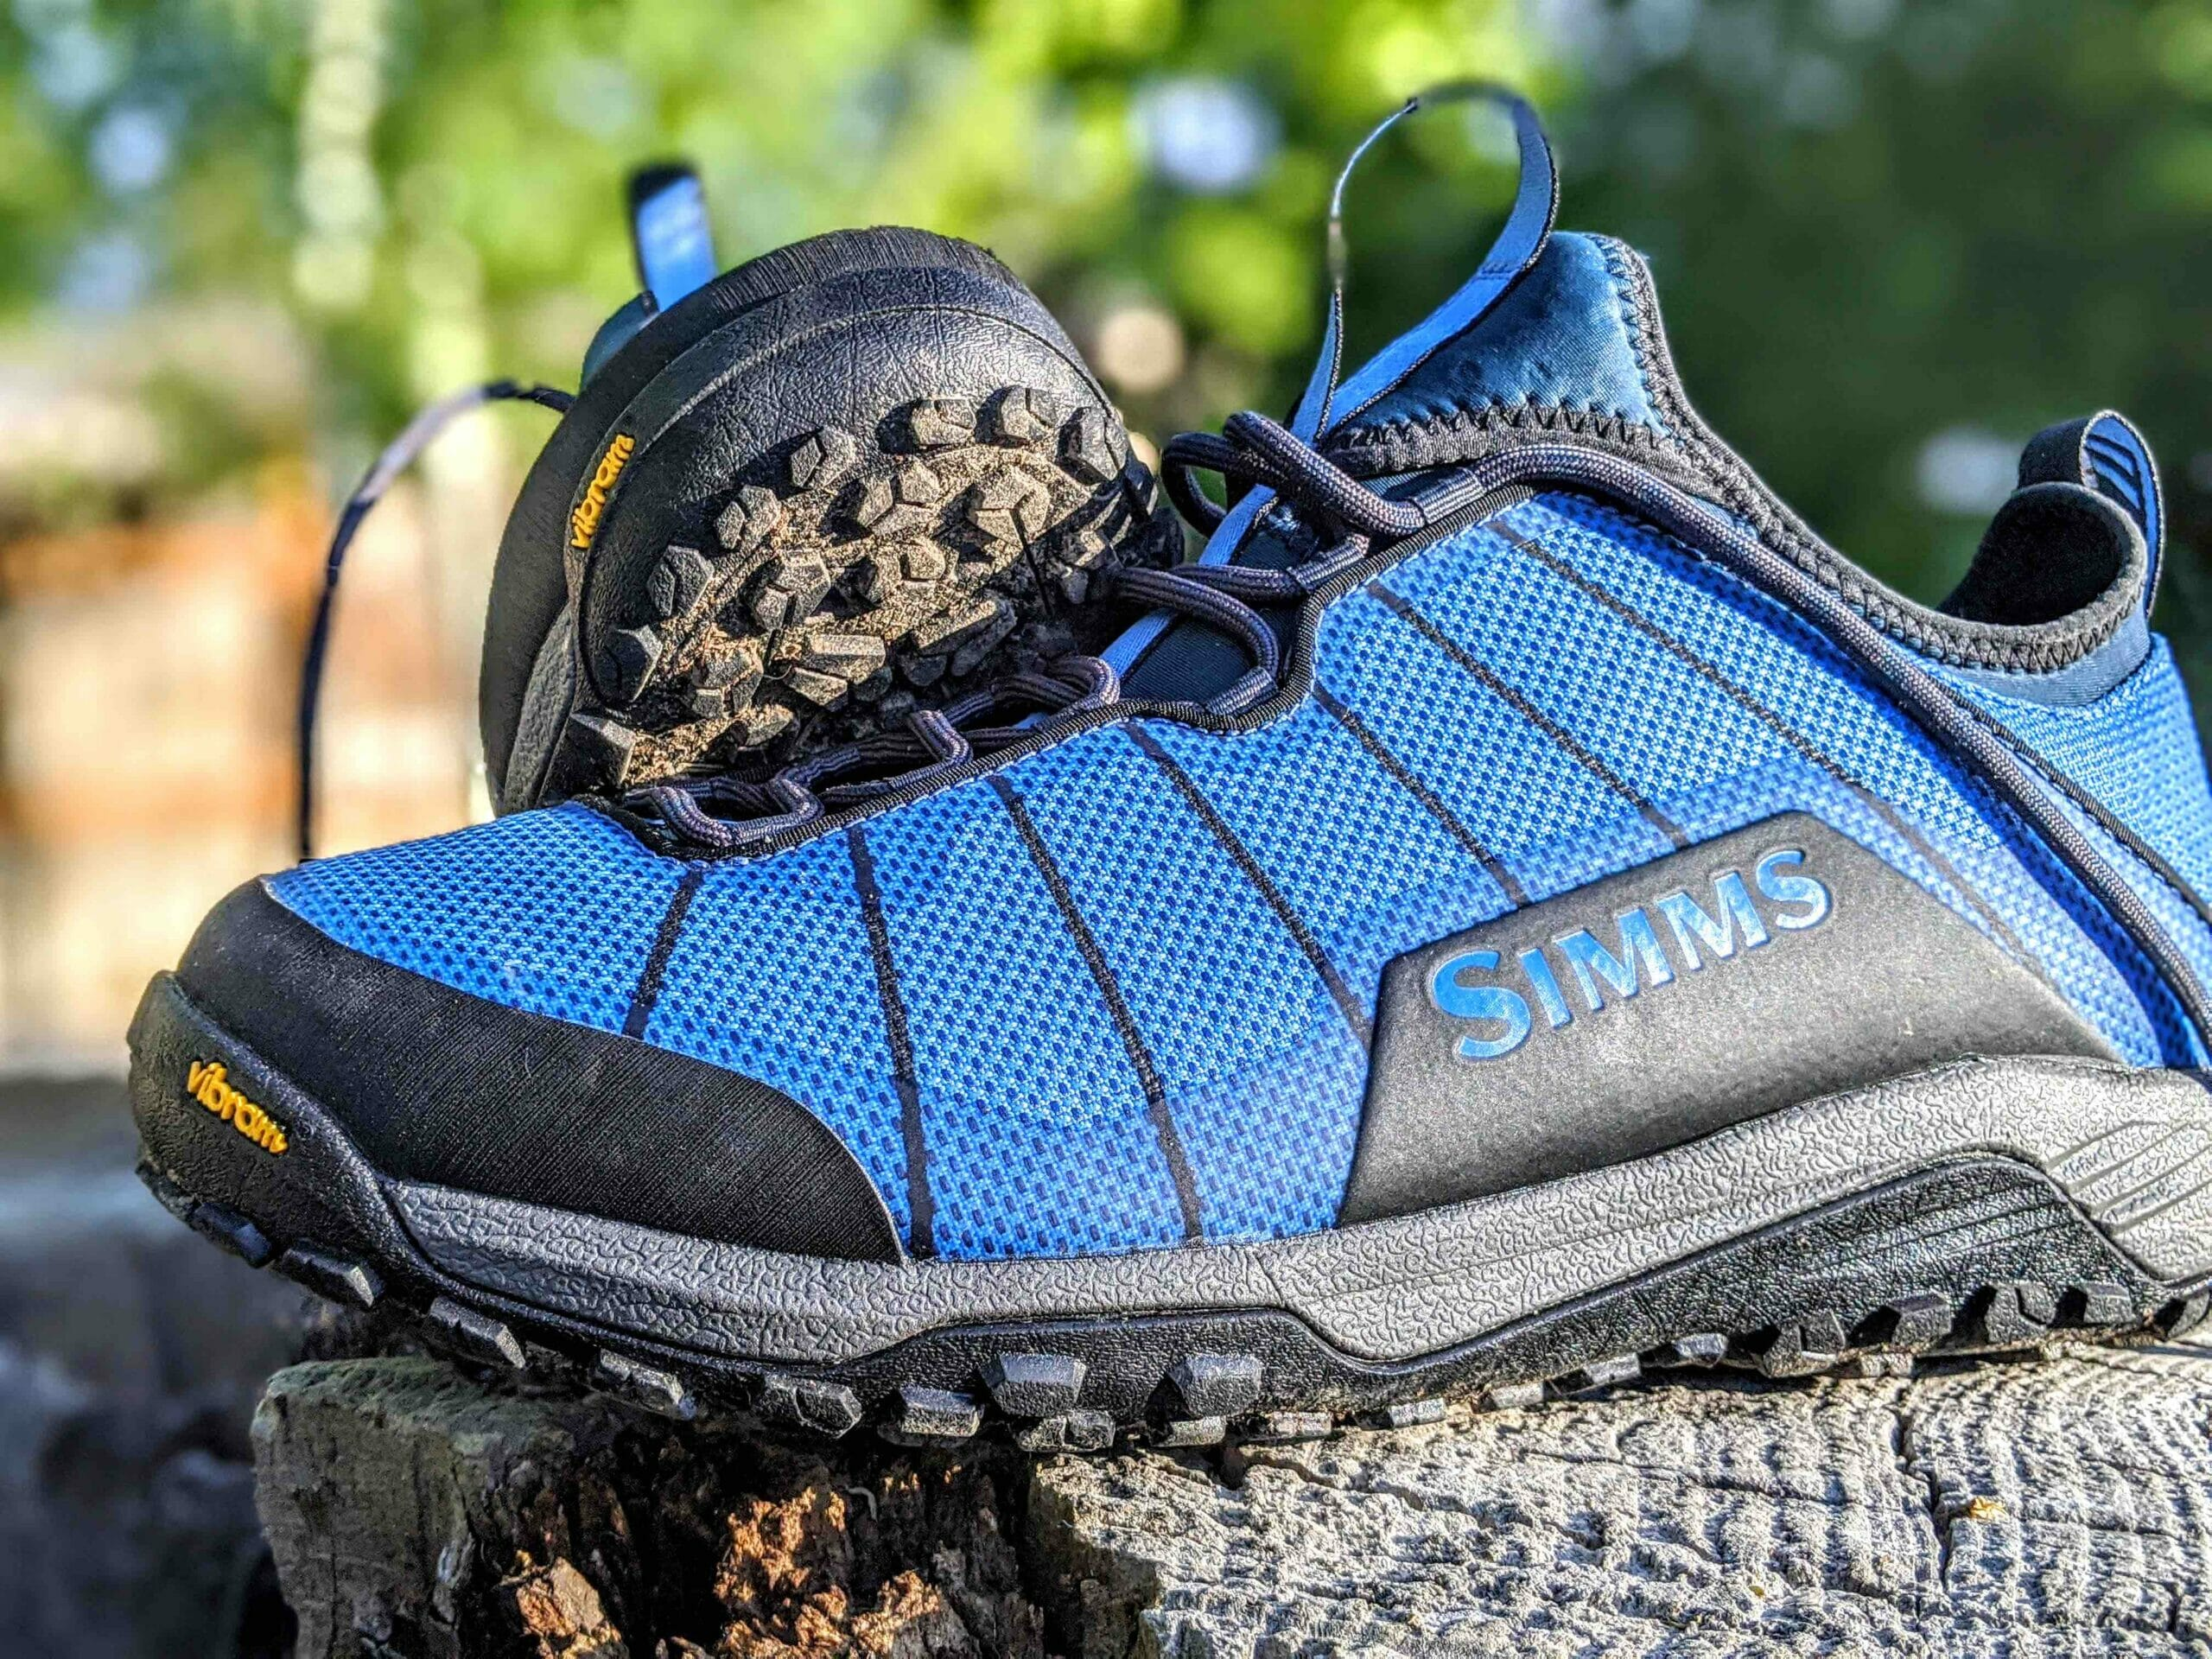 Simms Flyweight wading shoes | Trout